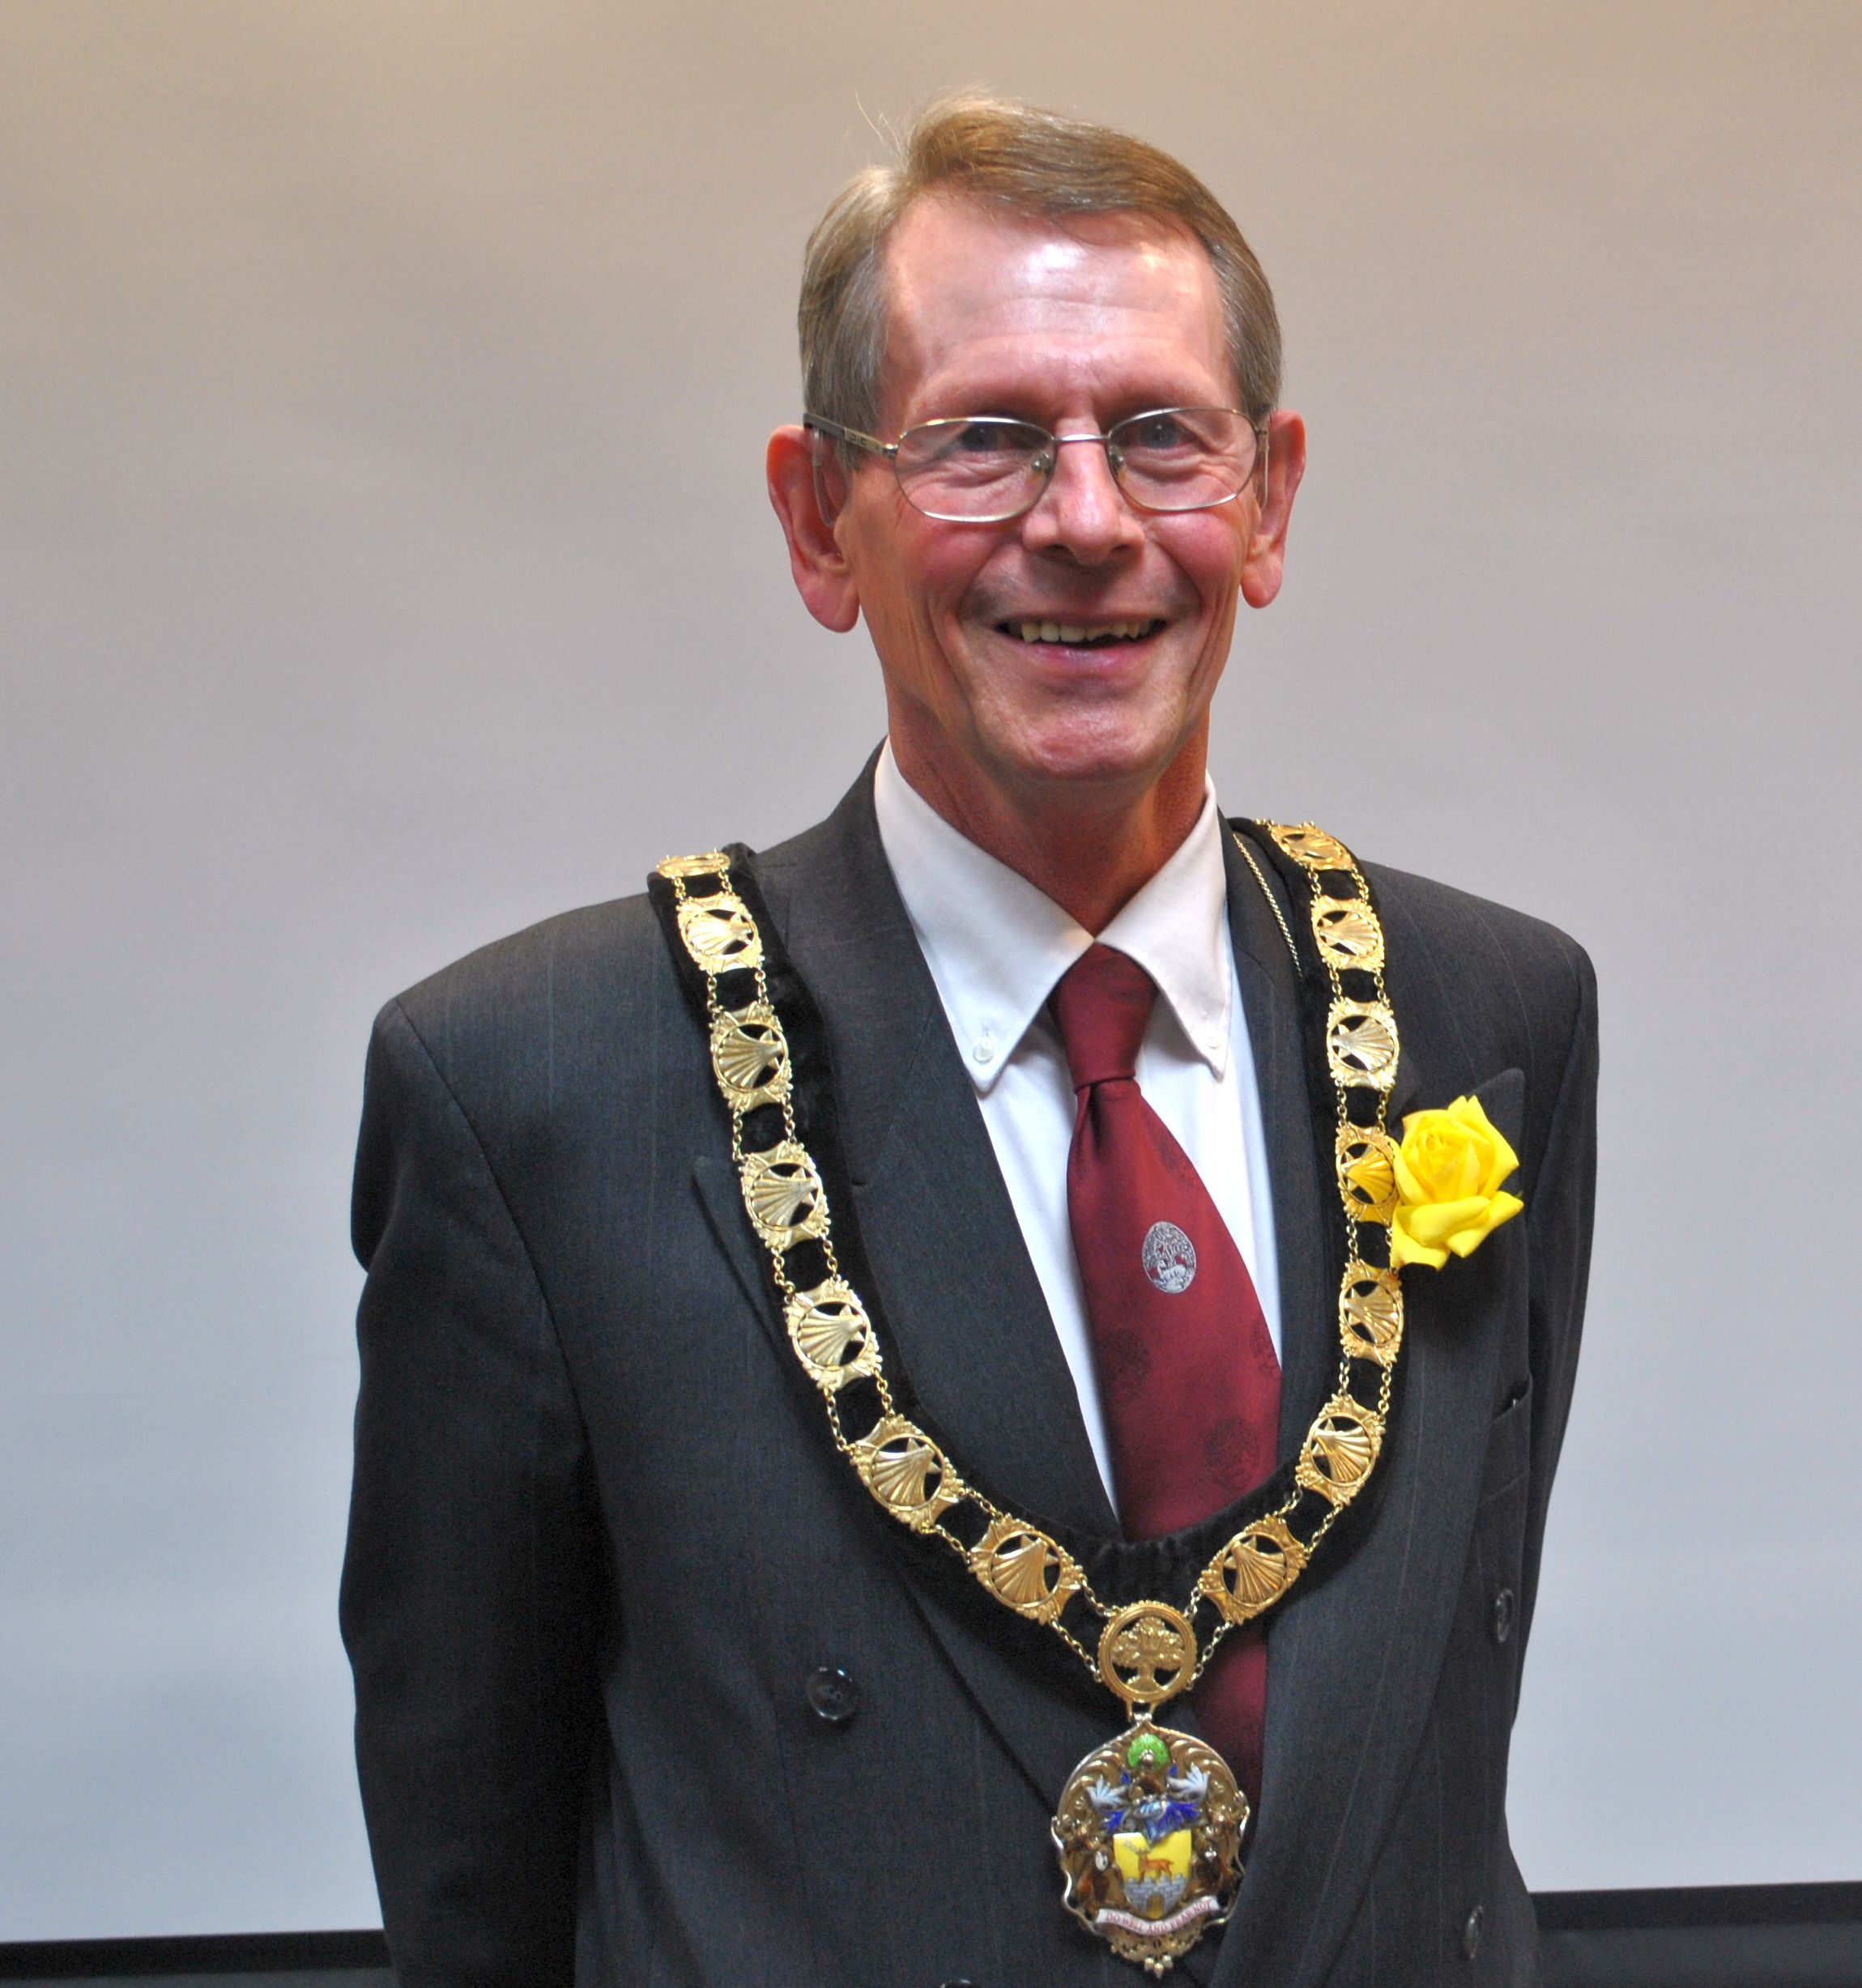 New Mayor of Hertsmere looking forward to the year ahead